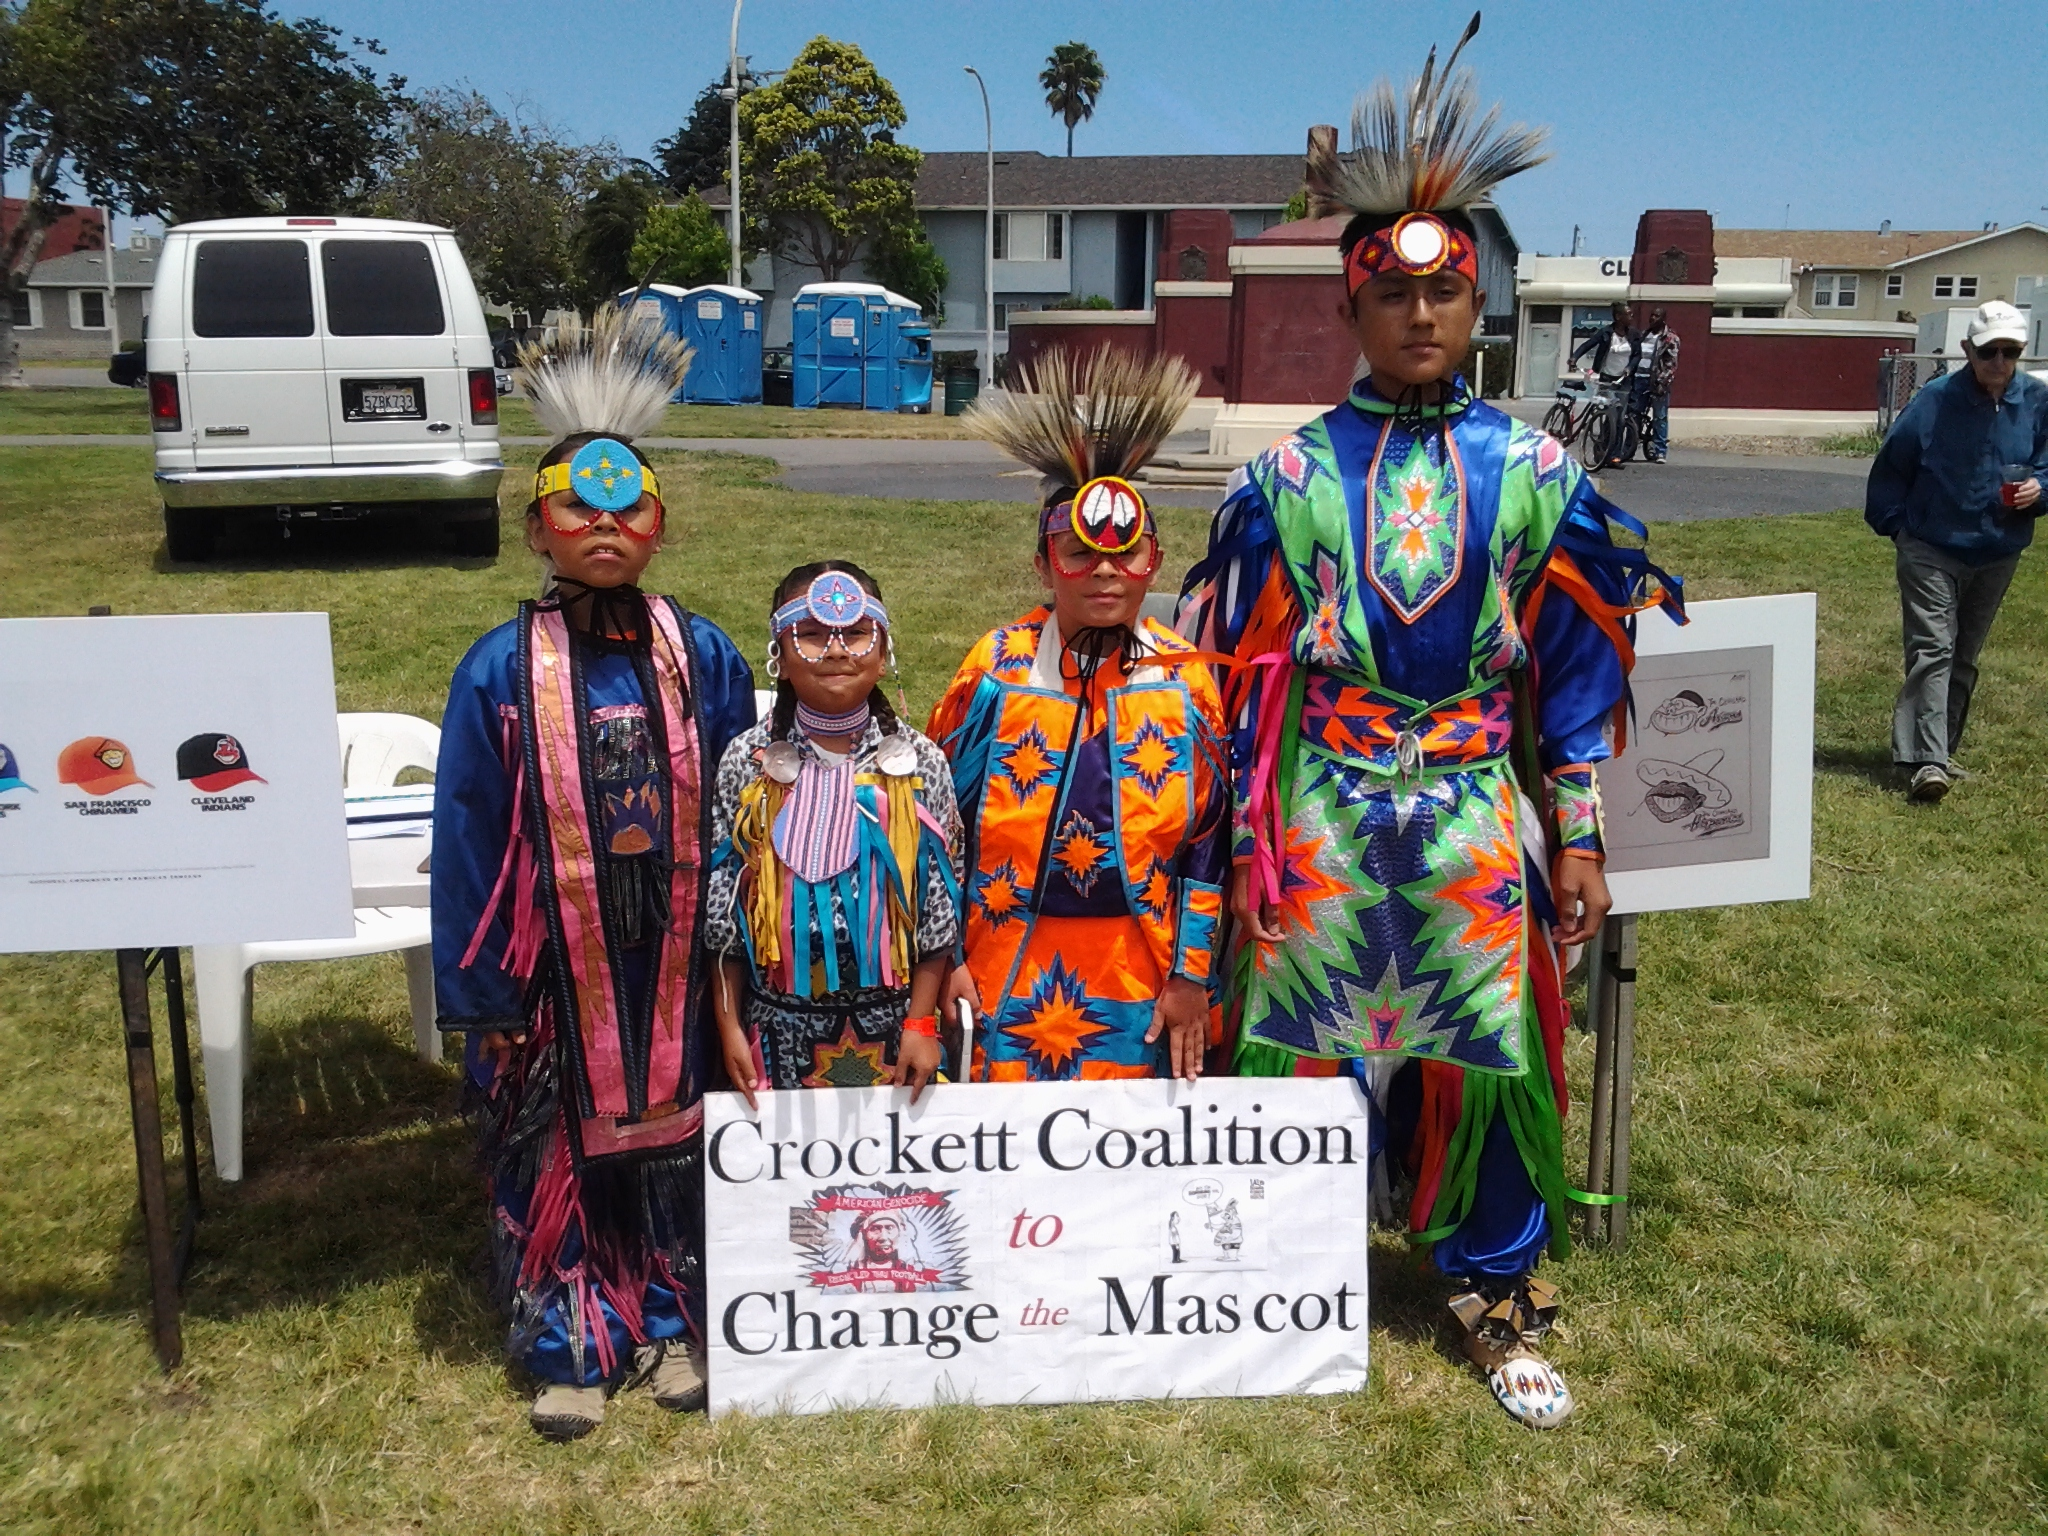 Crockett Coalition to Change the Mascot at Richmond Powwow June 21, 2014.jpg